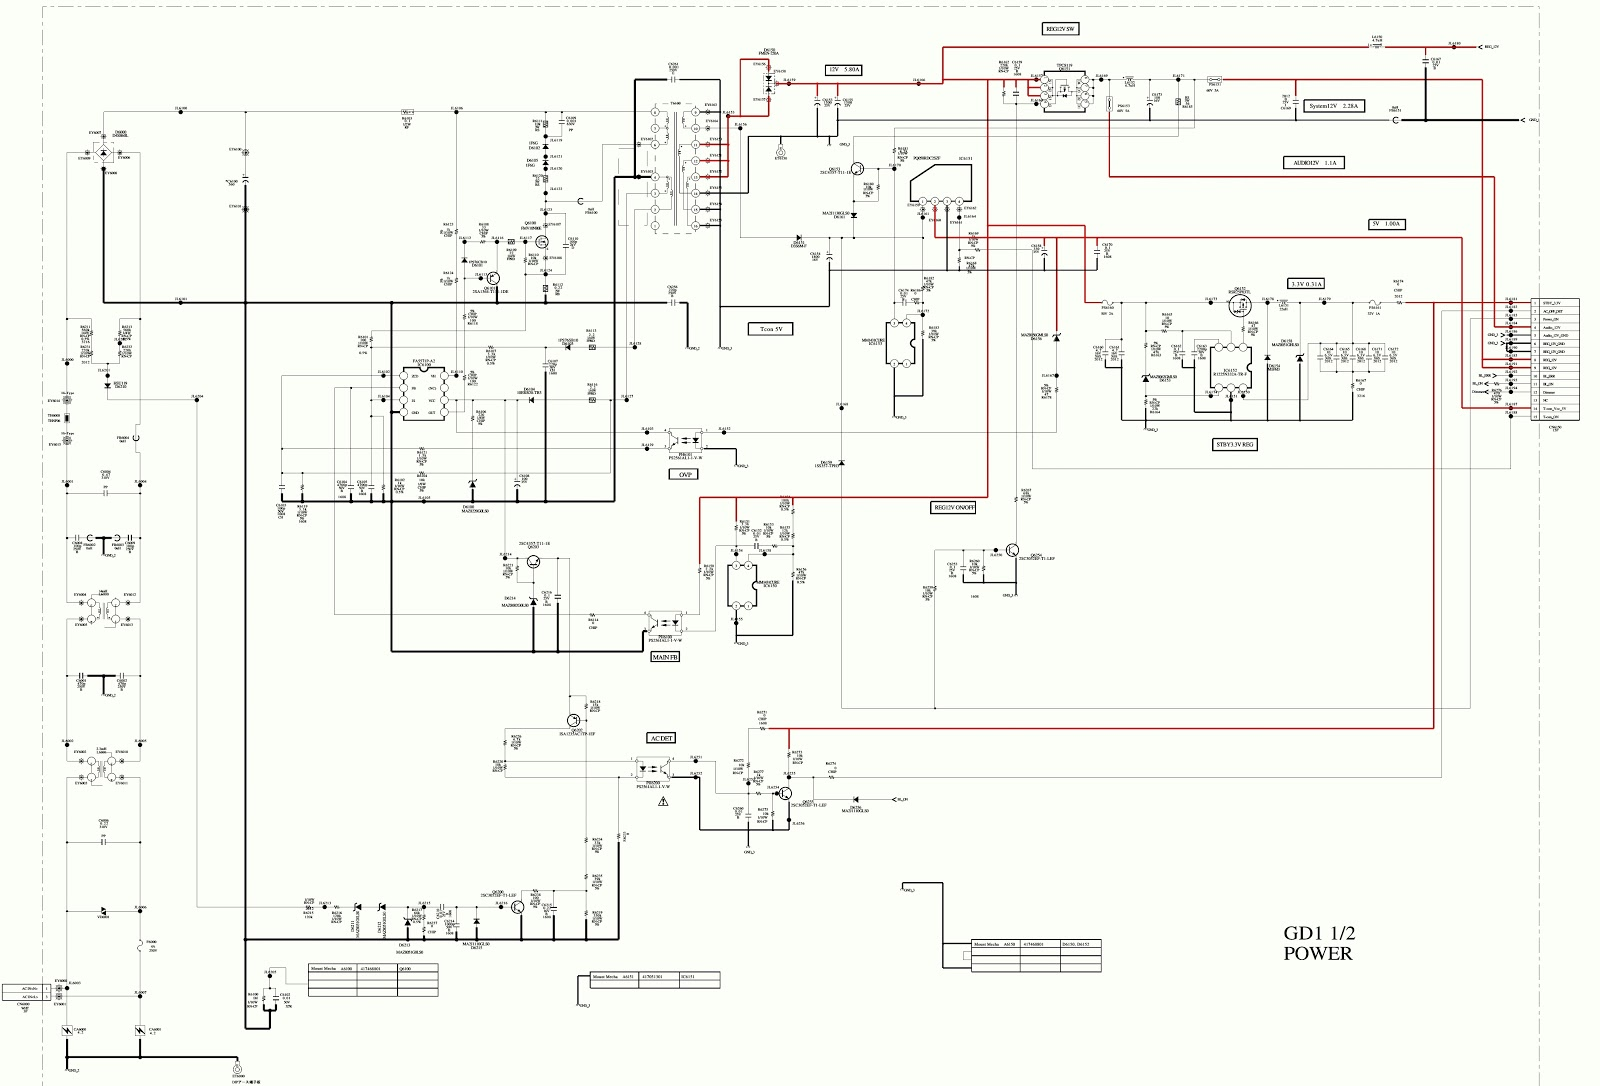 Ne5532 operation  lifier circuit diagram also How To Make A Simple Solar Mppt Circuit Using Ic555  m Maximum Power Point Tracker likewise How Do I Build A Ups Like Battery Backup System further Led display circuit diagram driving by 74hc595 as well 1600w High Power  lifier Circuit. on power inverter circuit diagram